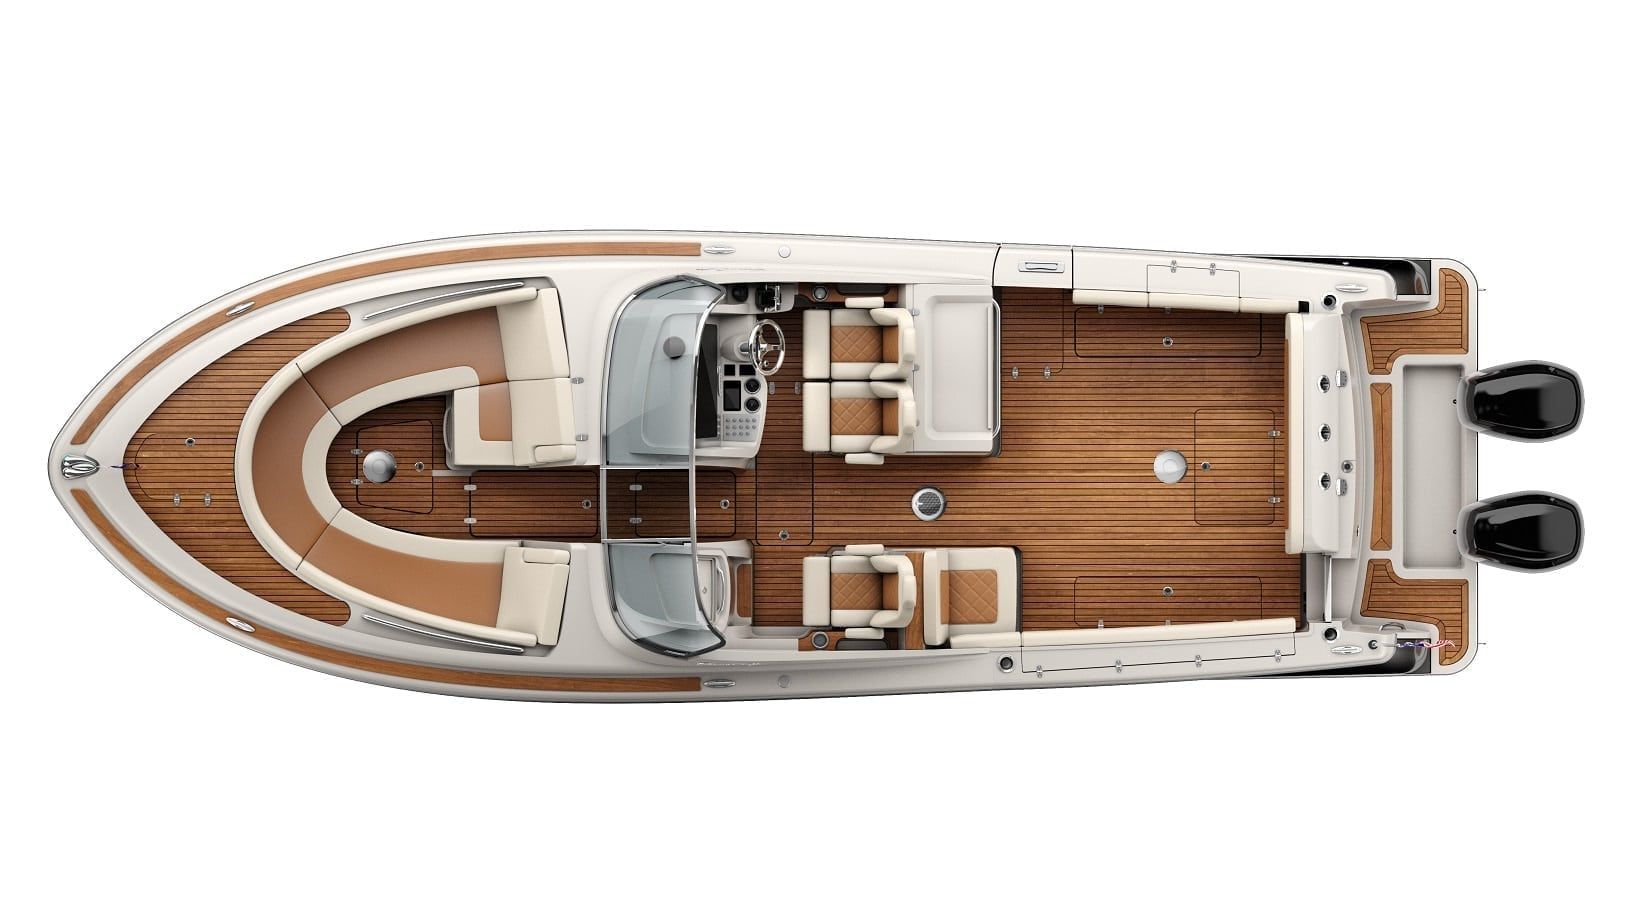 Chris Craft Calypso 30 Overhead Plan View